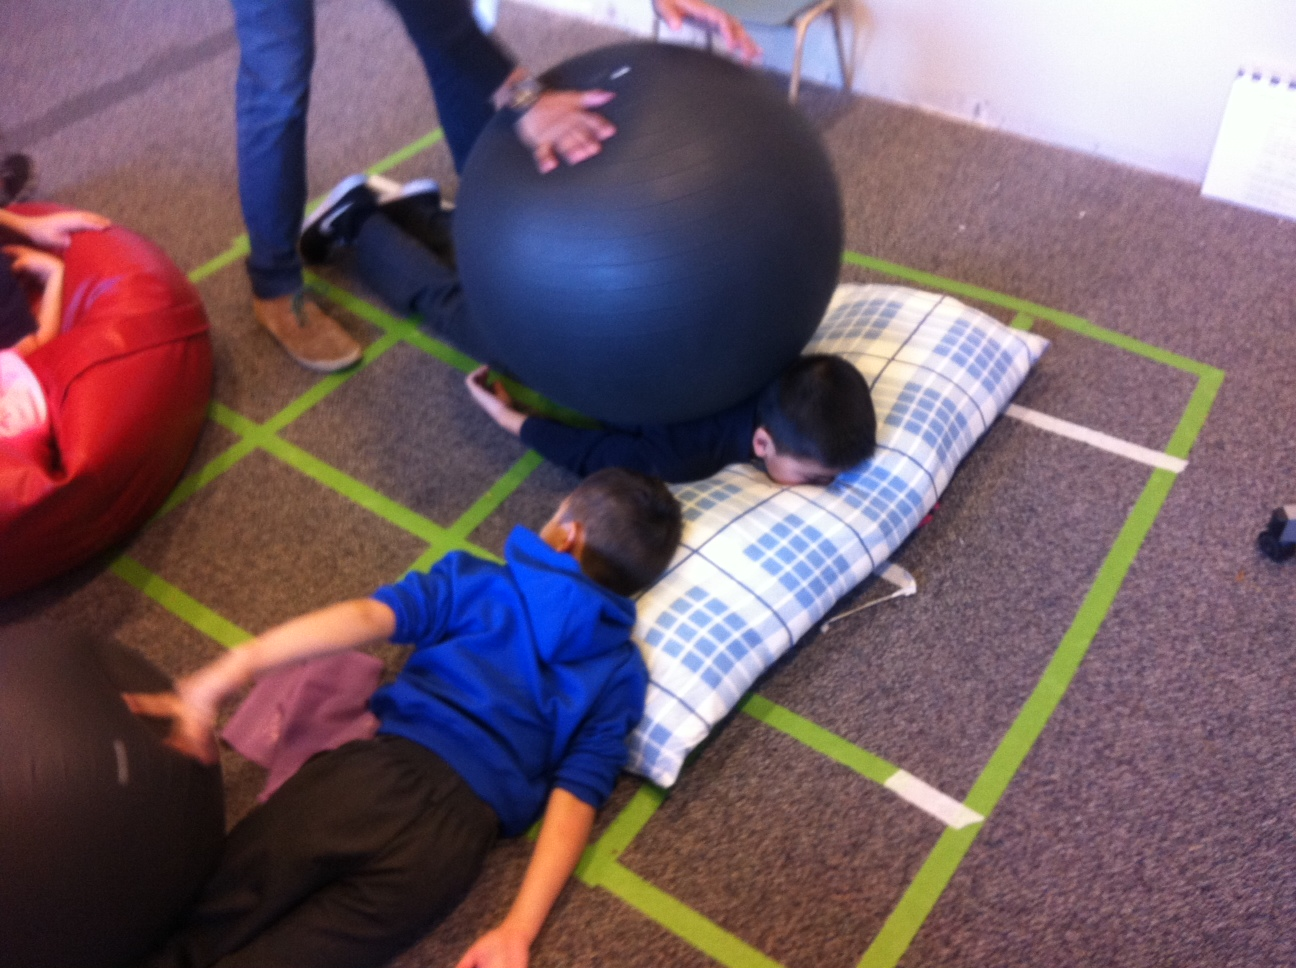 big bean bags chairs desk chair home goods mr. jacob's class: tuesday, november 18, 2015